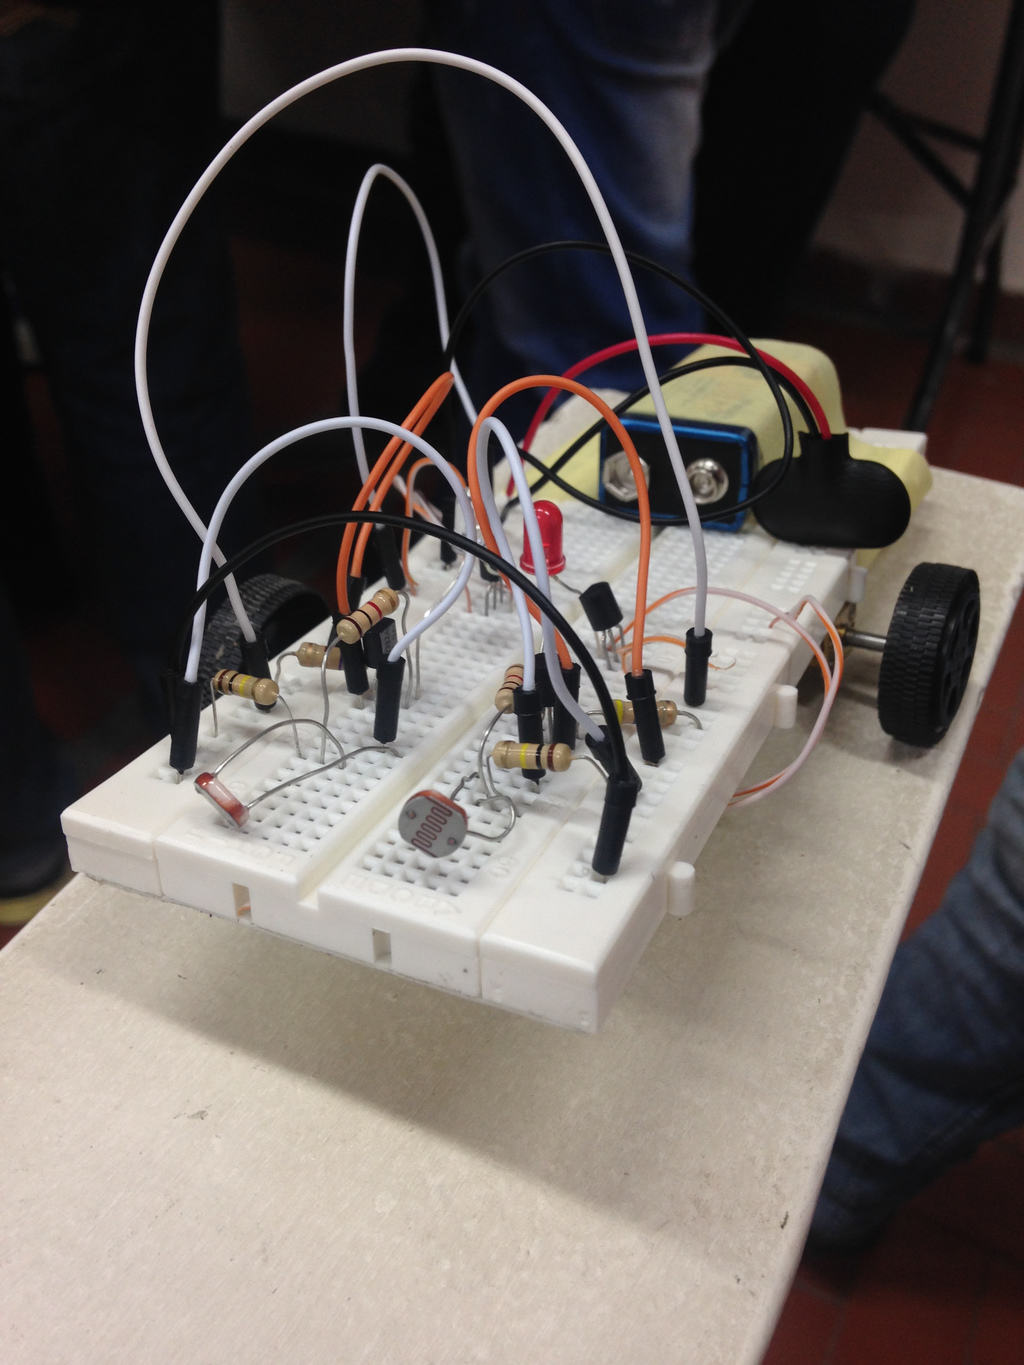 Get sponsorship for your project - Build Electronic Circuits